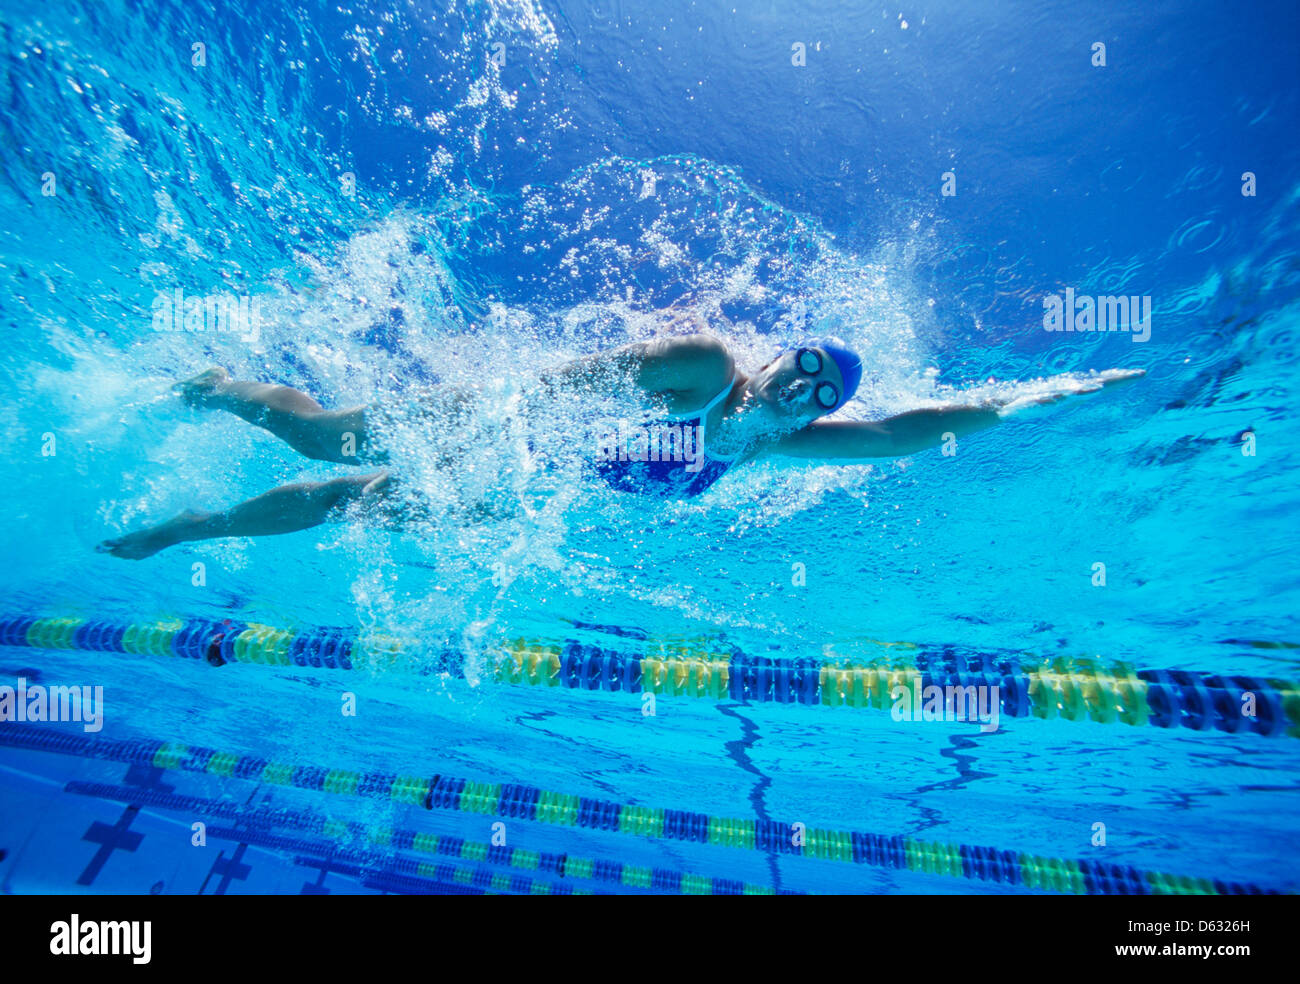 Female swimmer in United States swimsuit while swimming in pool - Stock Image